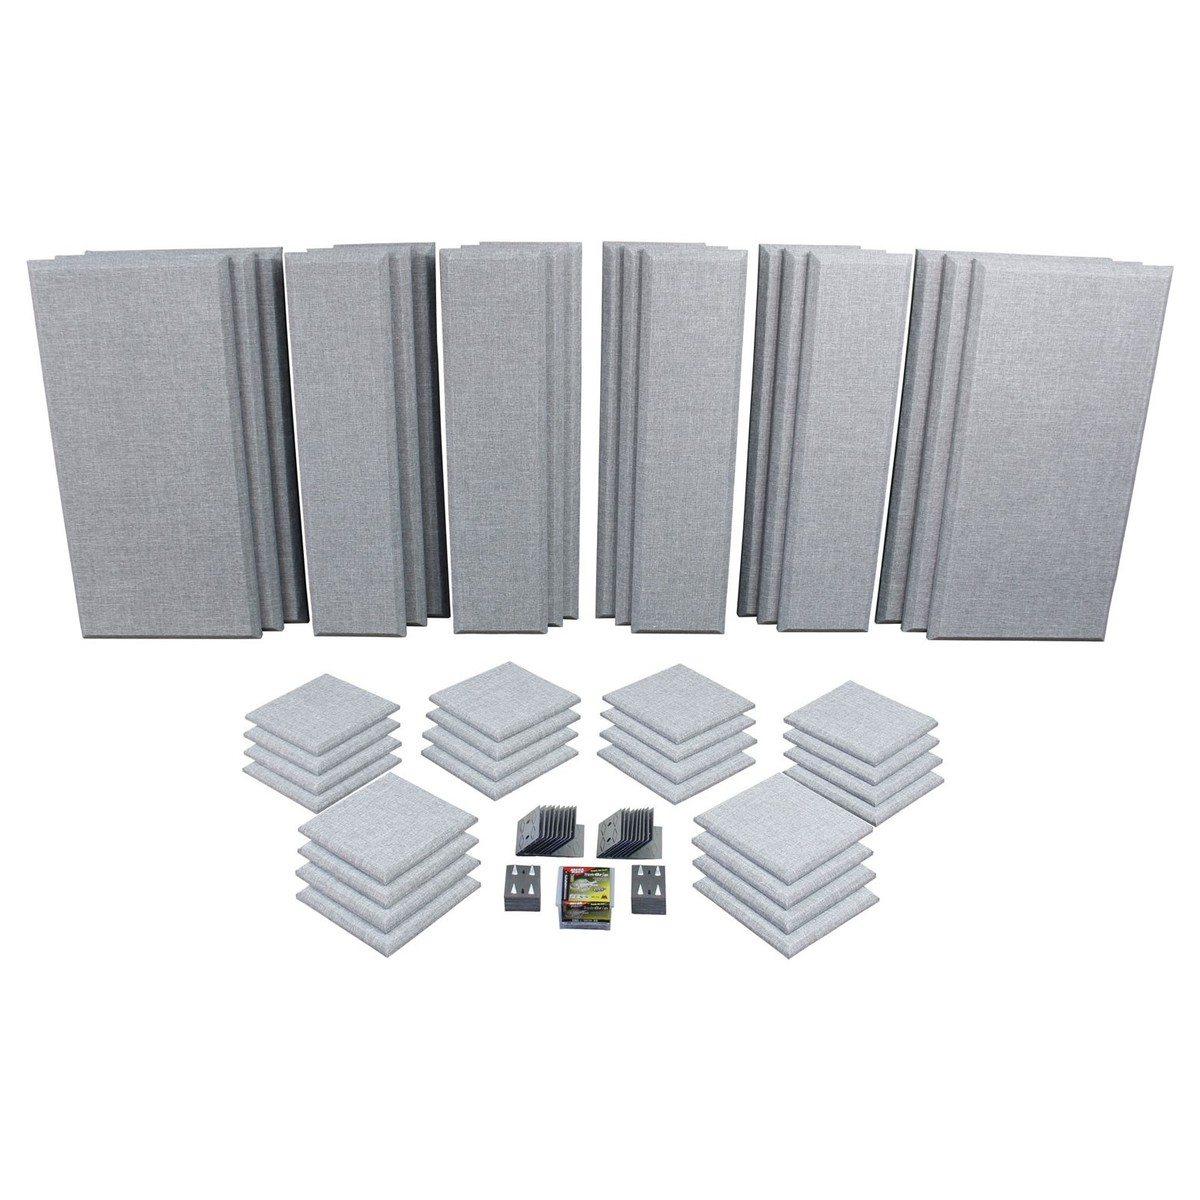 Click to view product details and reviews for Primacoustic London 16 Room Kit In Grey.